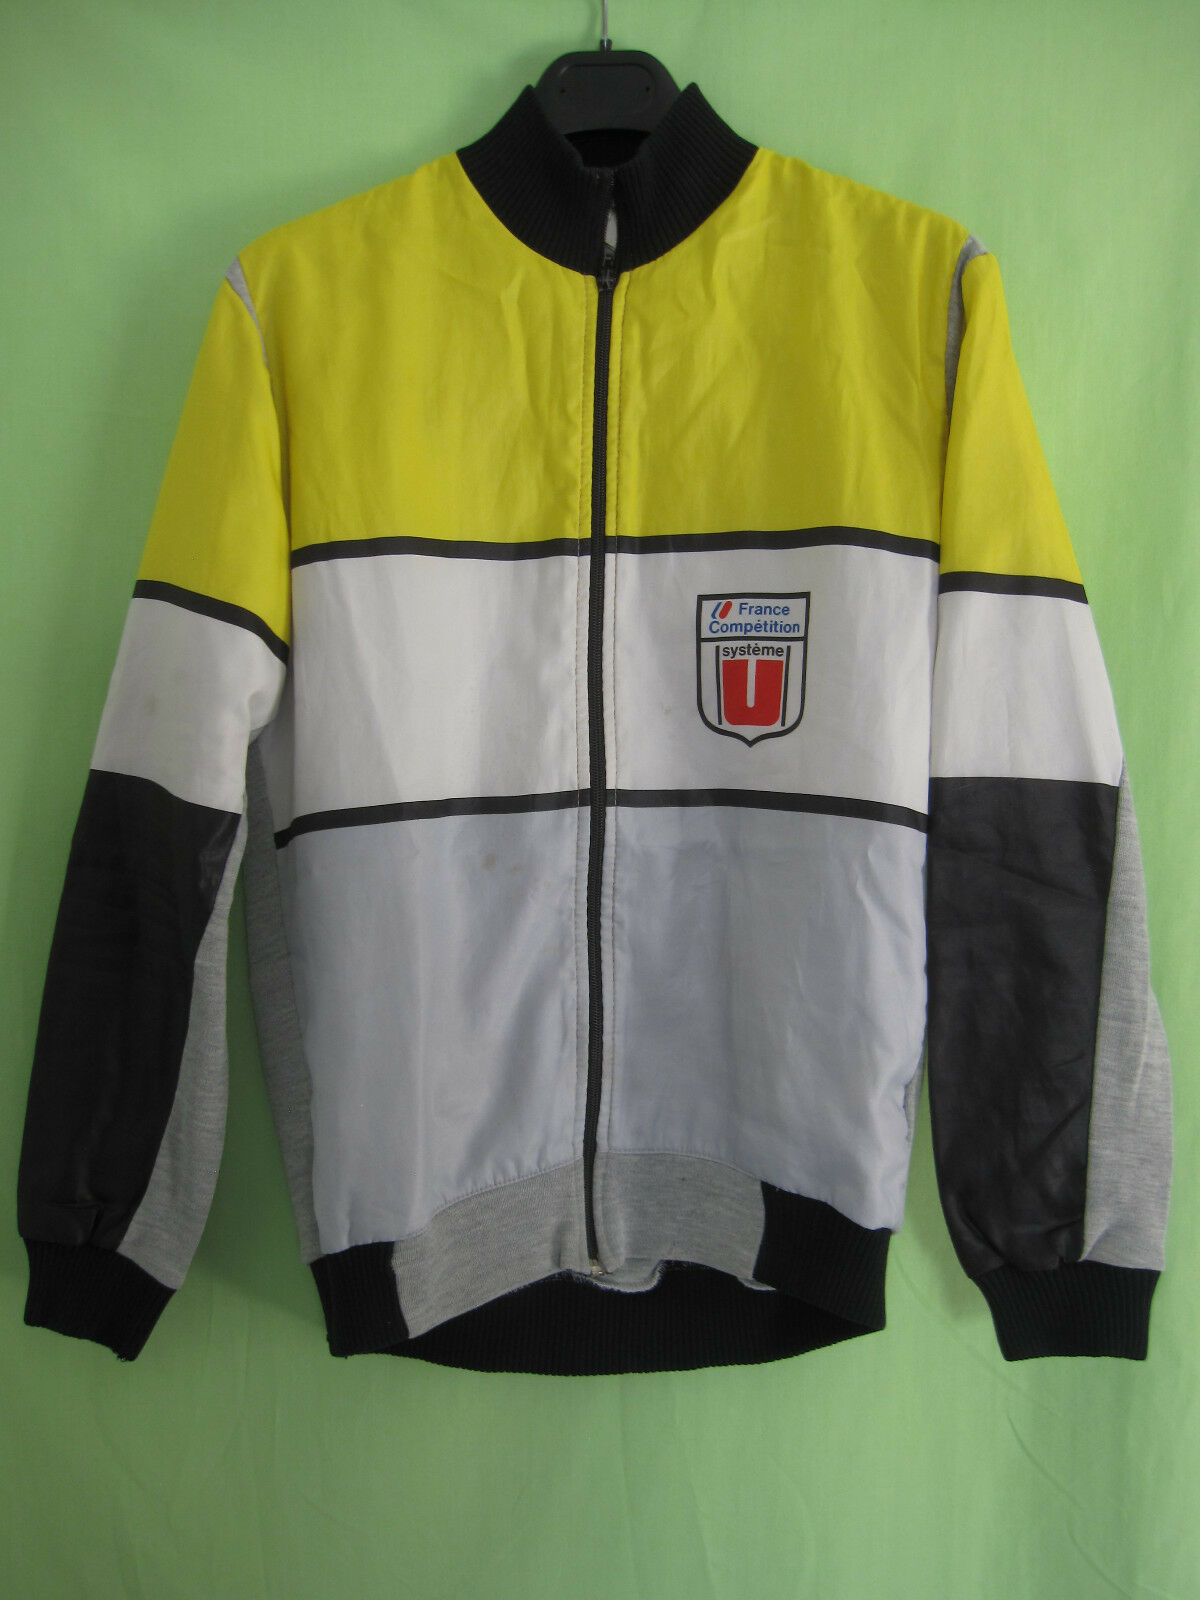 Veste cycliste Systeme U France competition Equipe Pro 80'S Hiver Jersey - M